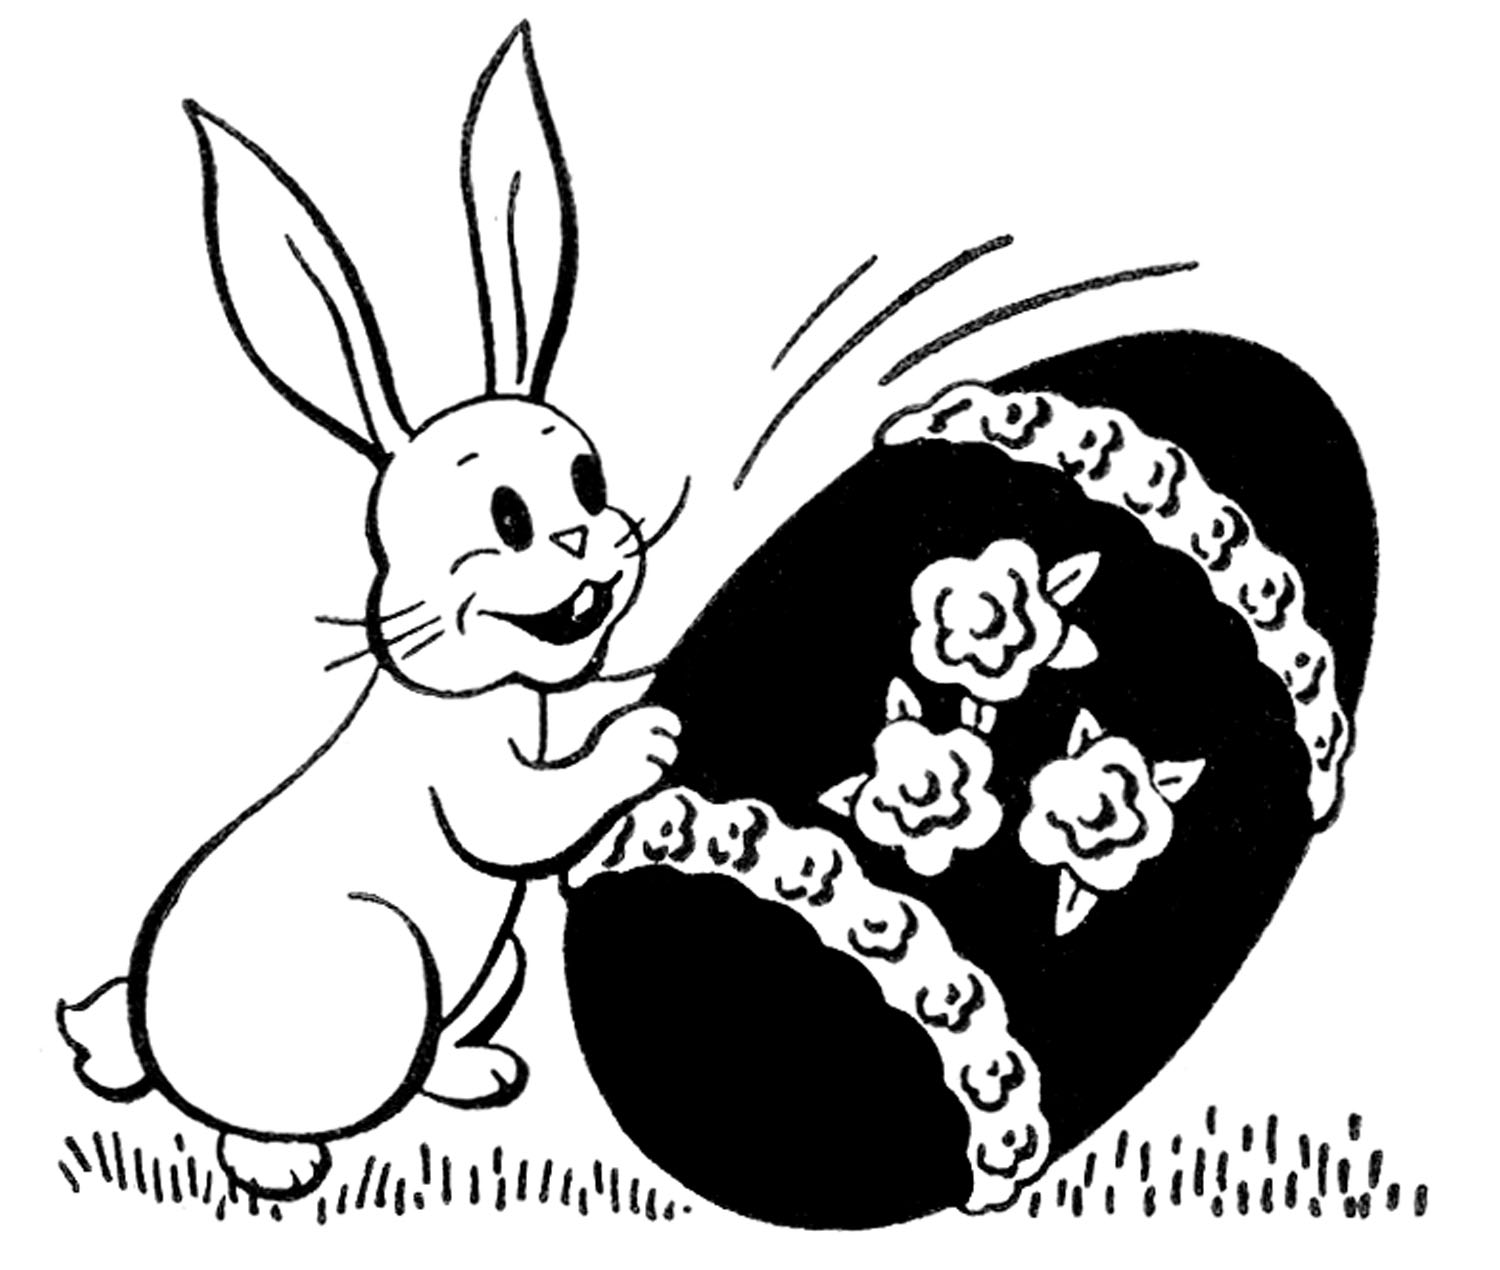 20 Bunny Rabbit Silhouettes And Clip Art The Graphics Fairy